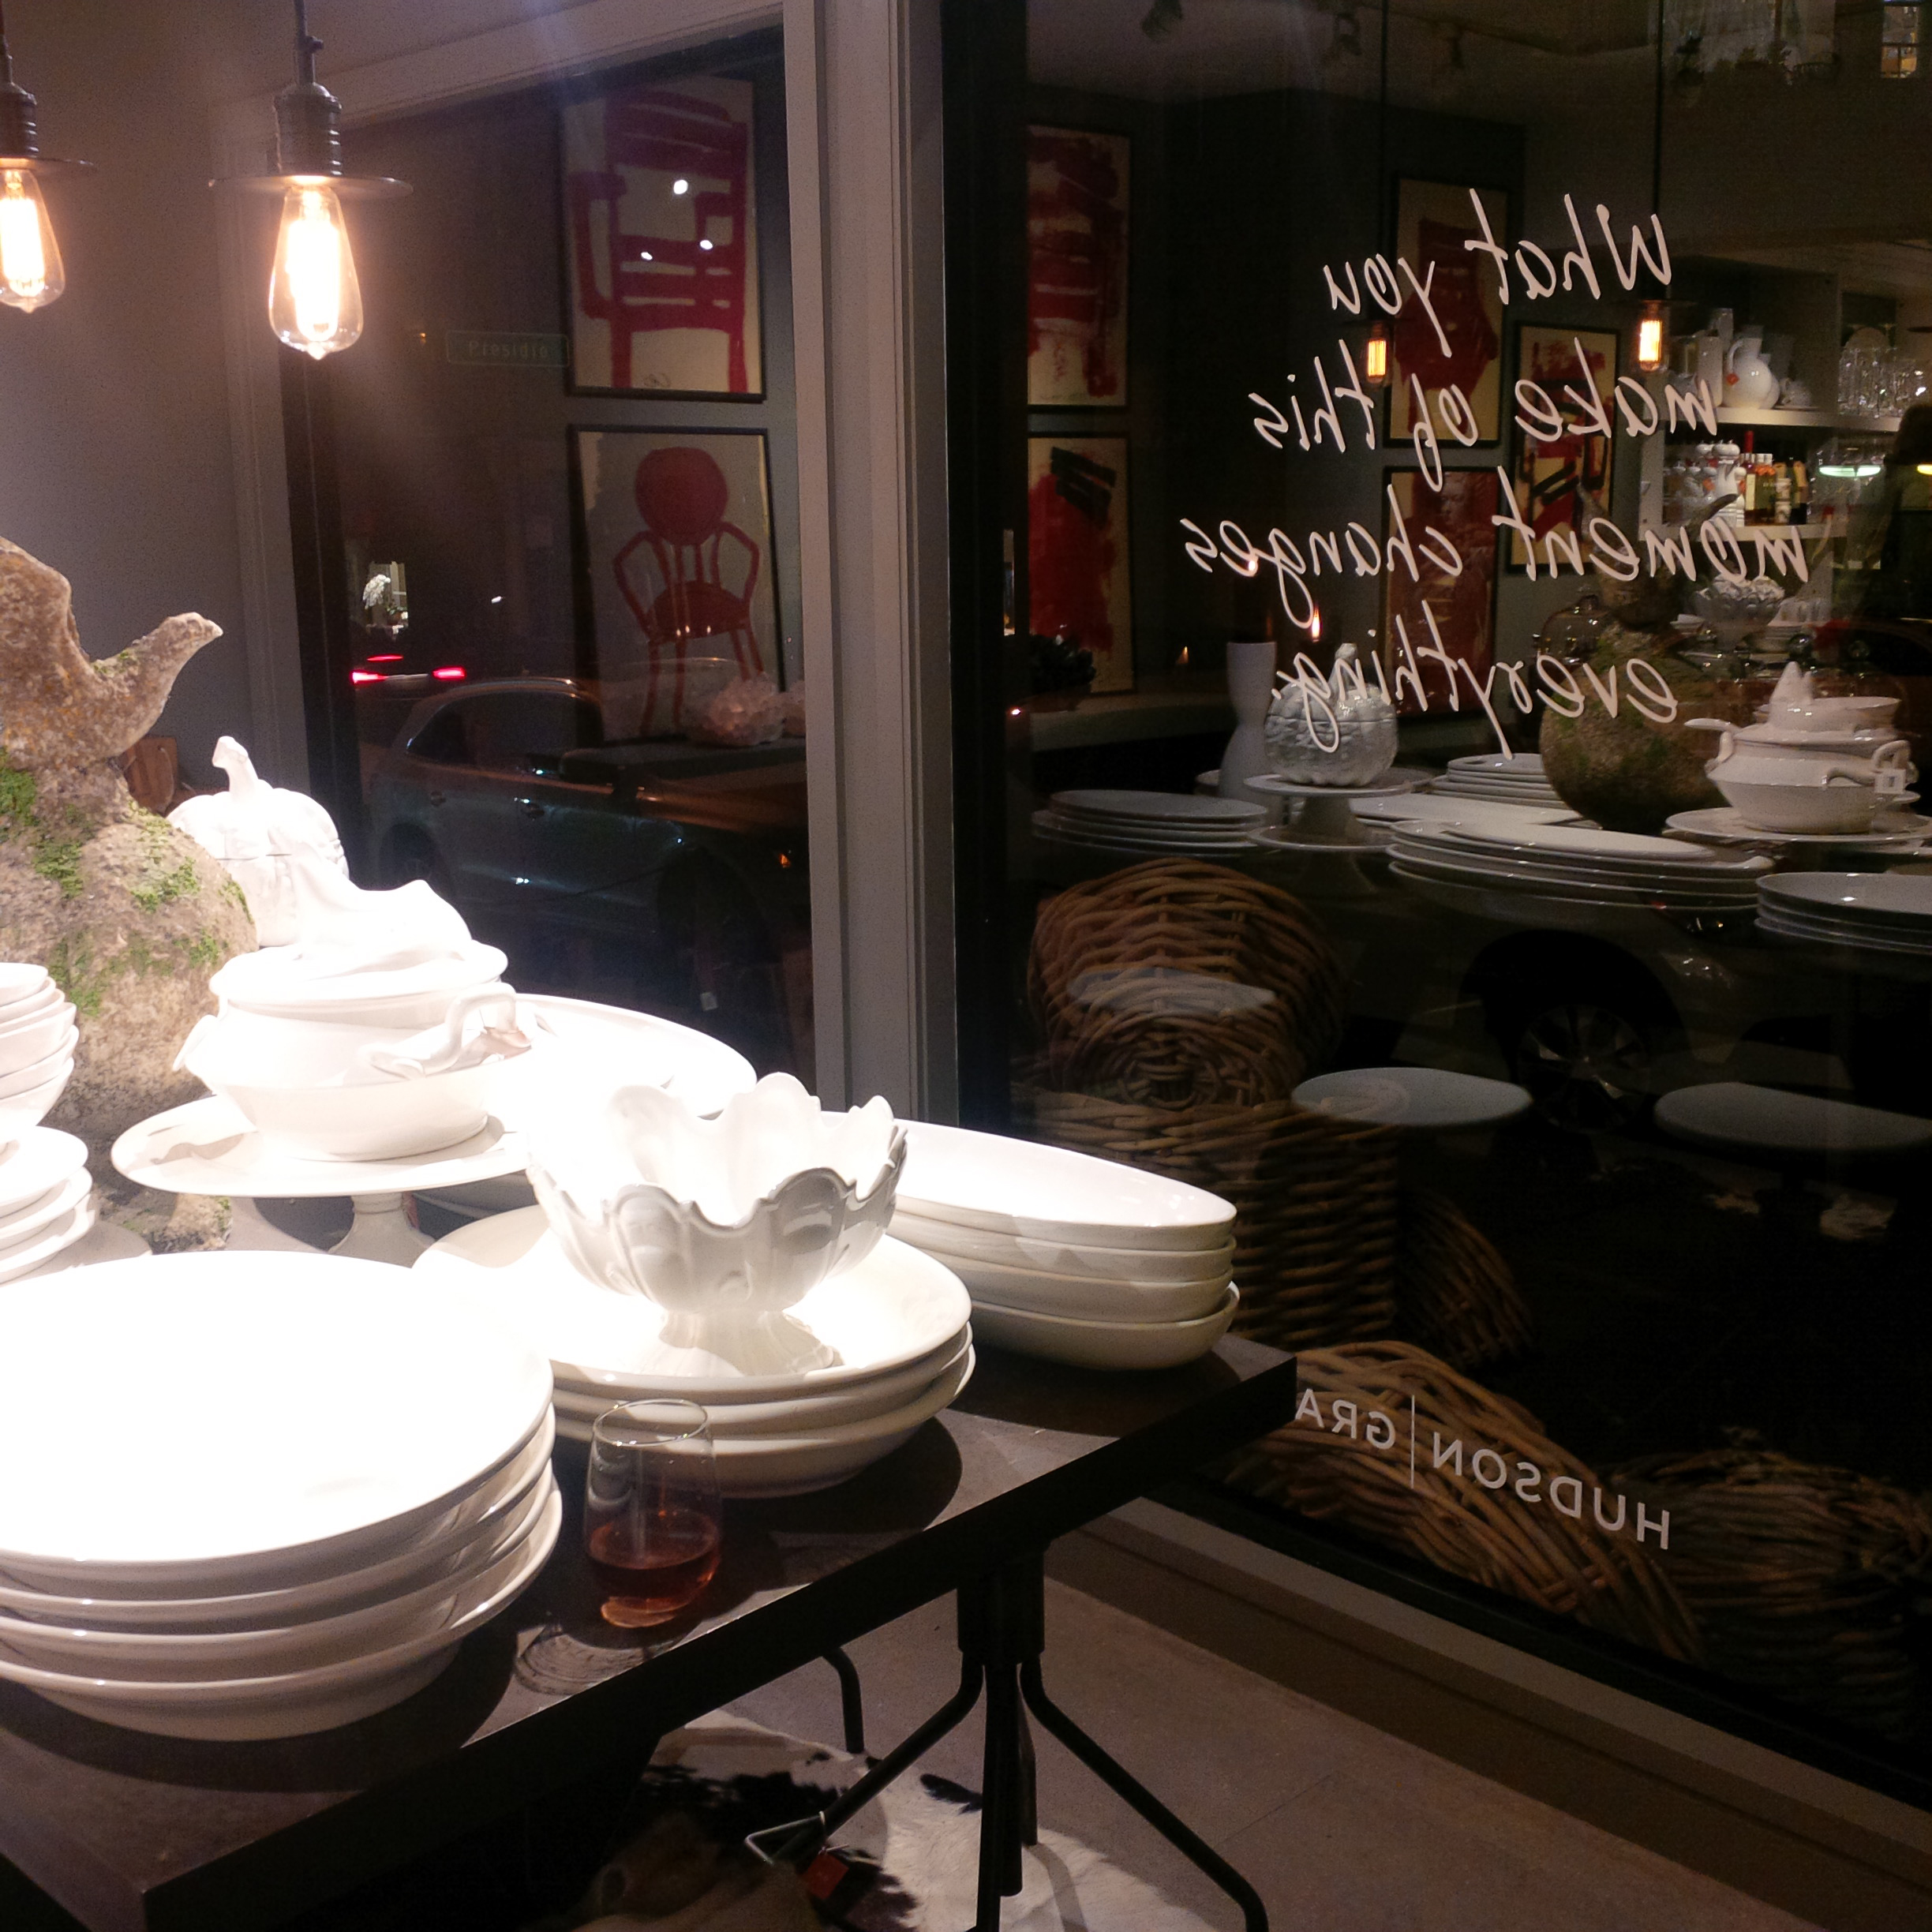 A monotone tablescape of sculptural wares would be a visual treat for any Holiday diner.